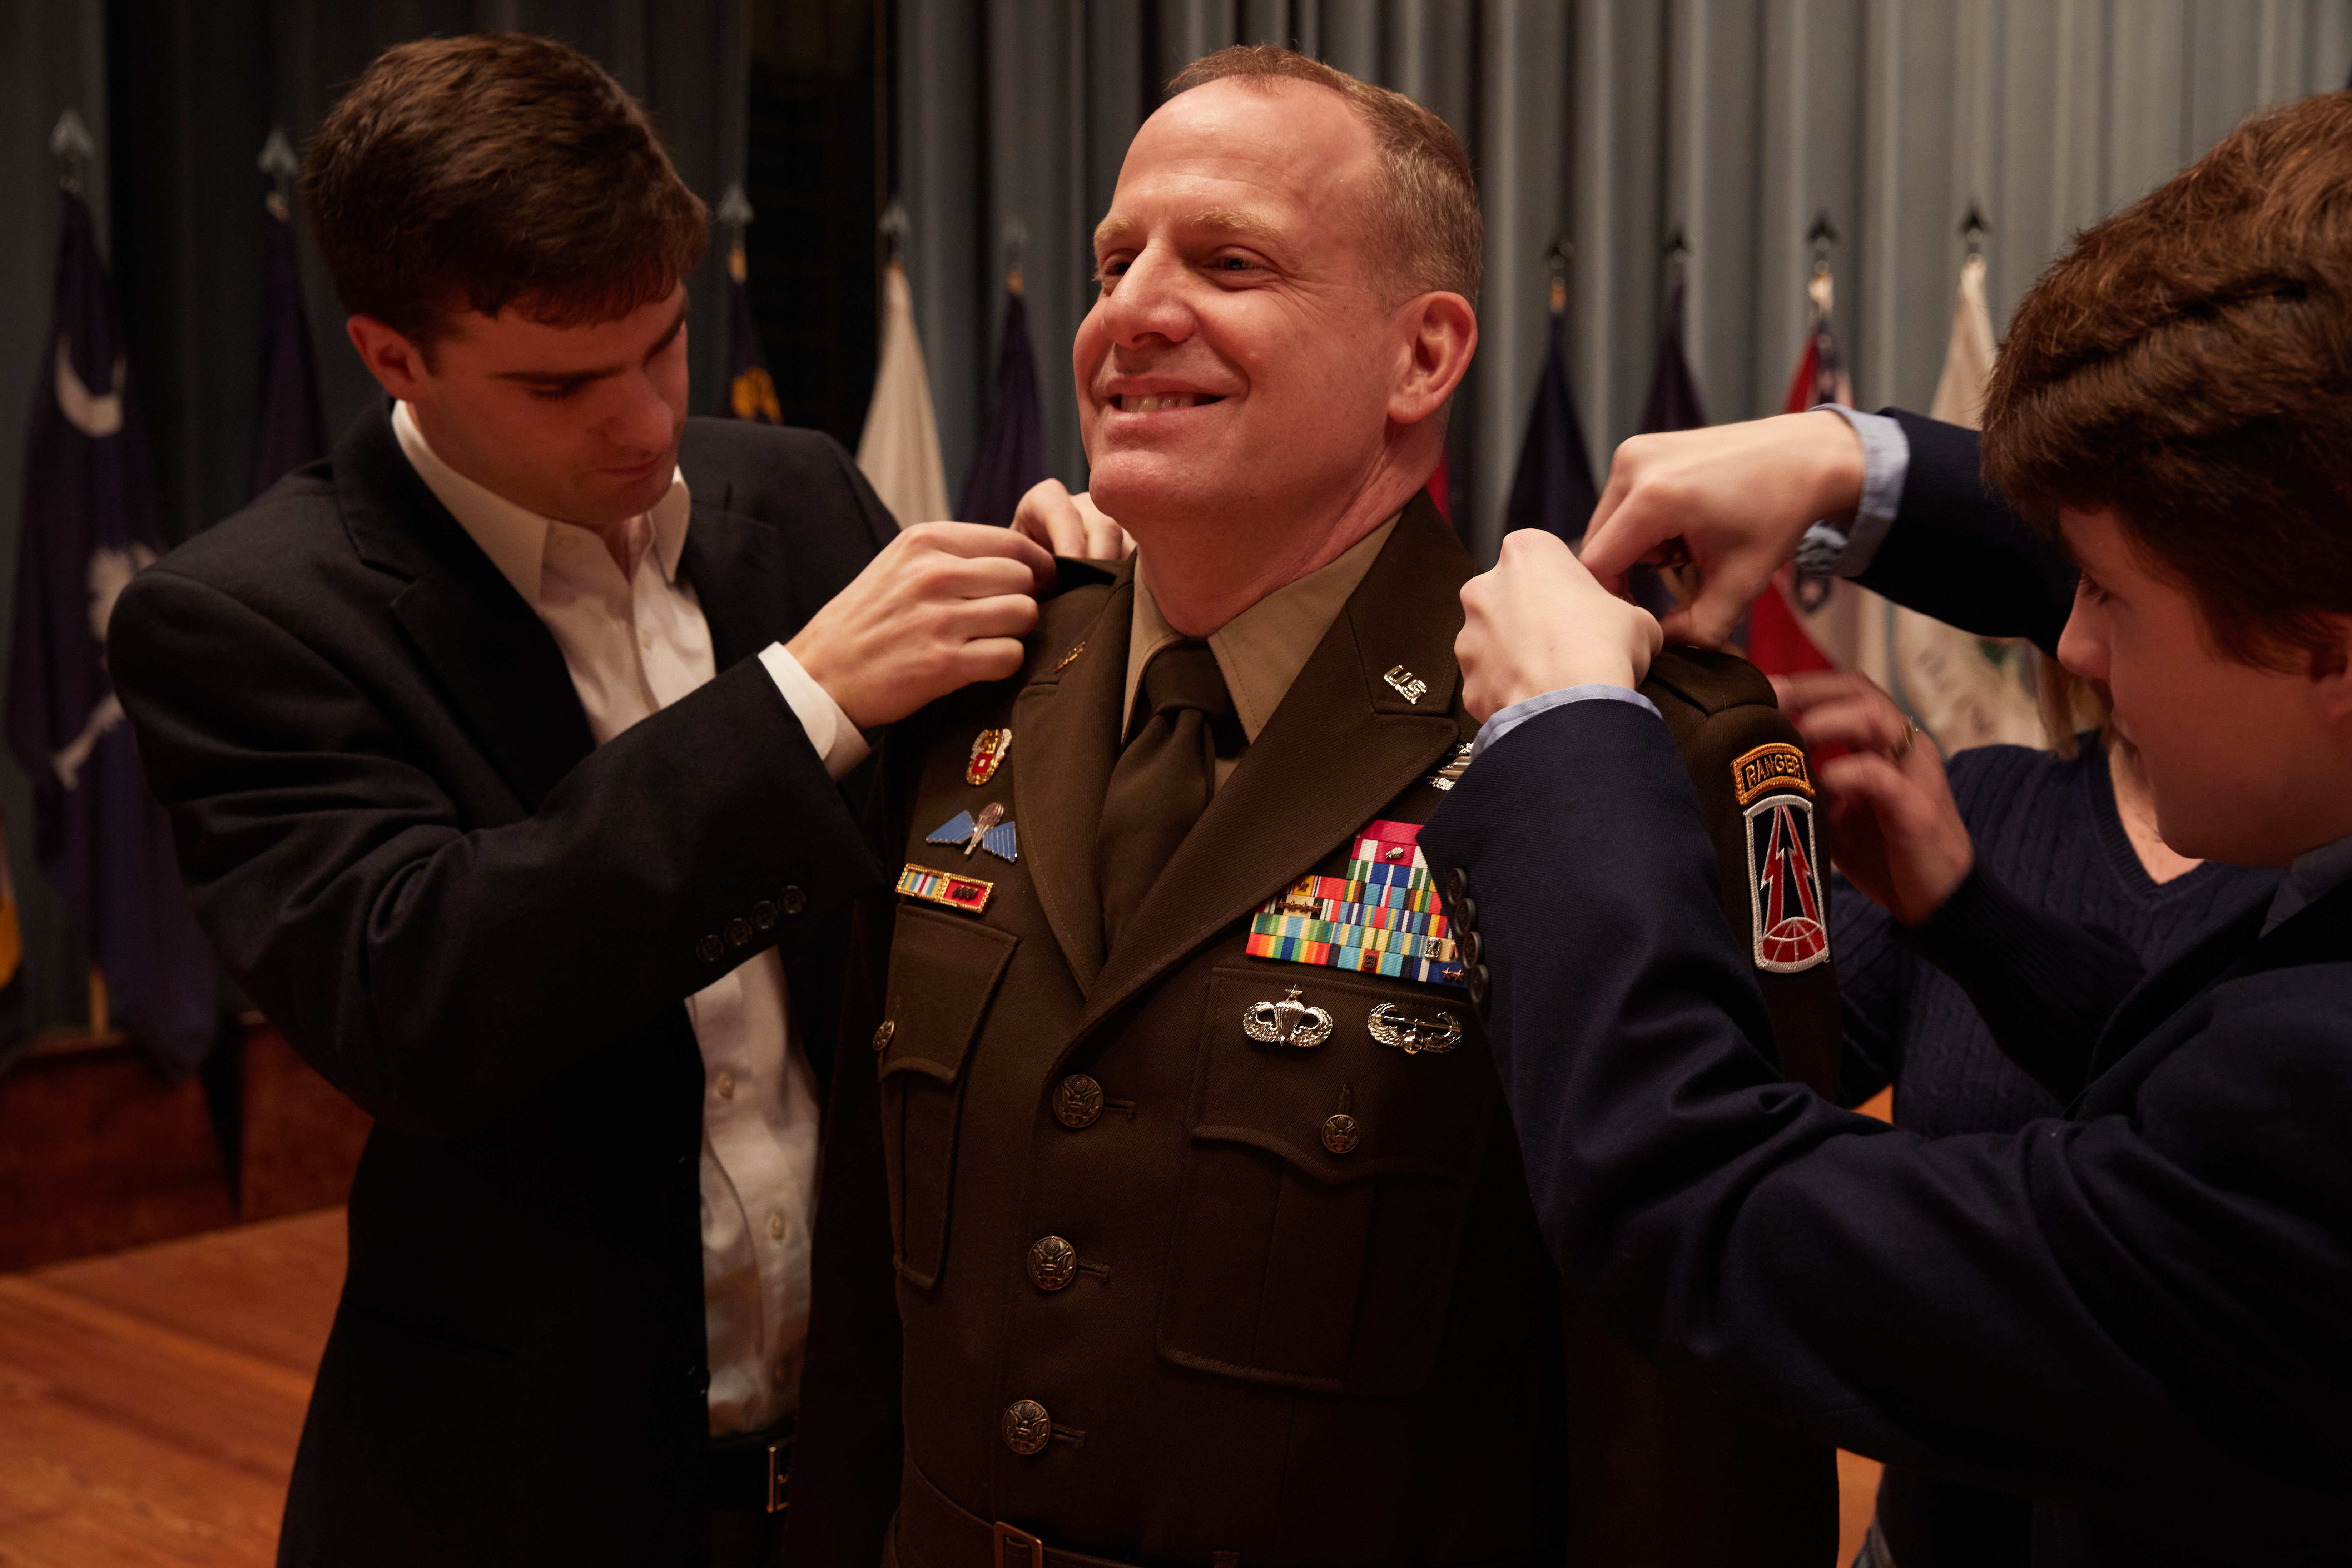 New 335th Signal Command Senior Leader Pins Second Star